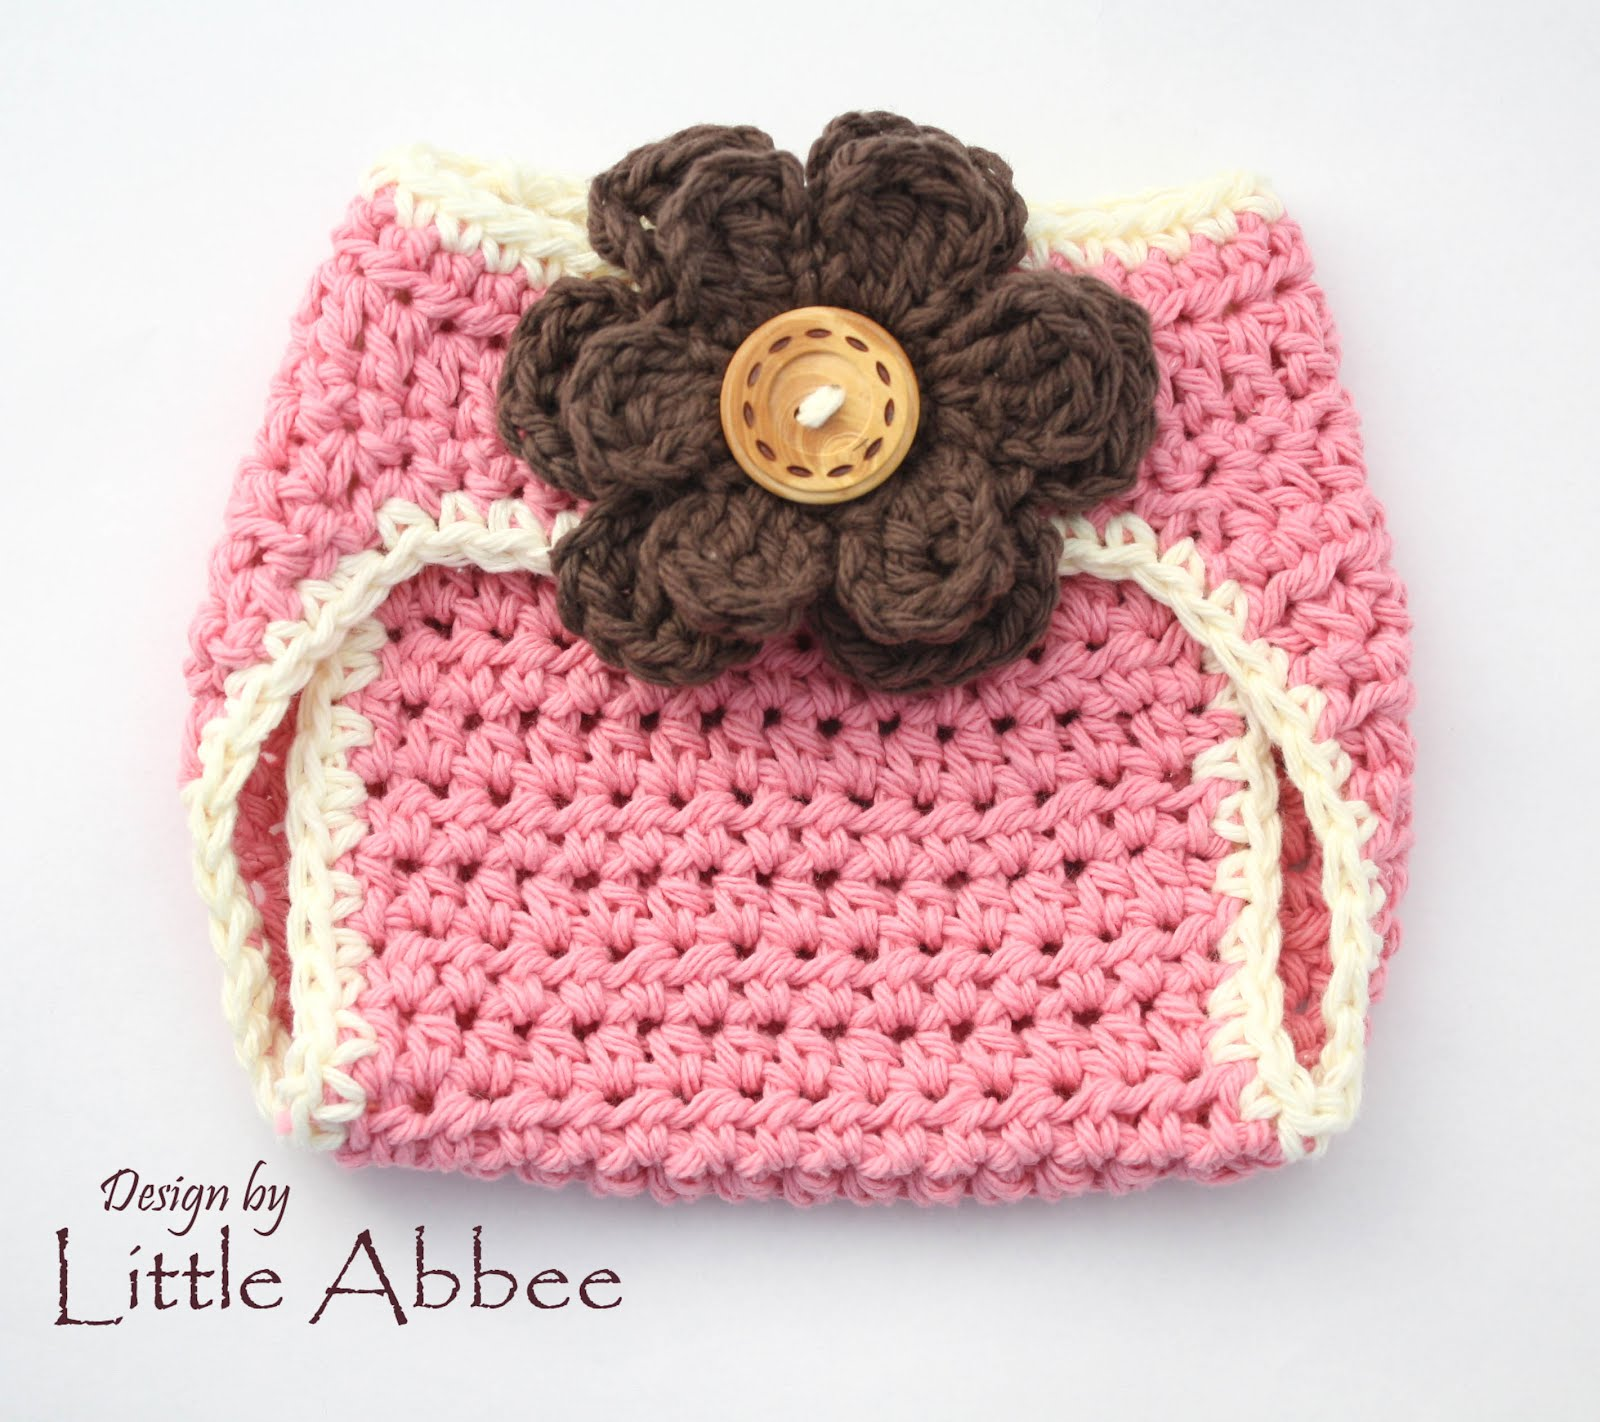 Crochet Baby Girl Diaper Cover Pattern : Little Abbee: Diaper Cover Crochet Pattern